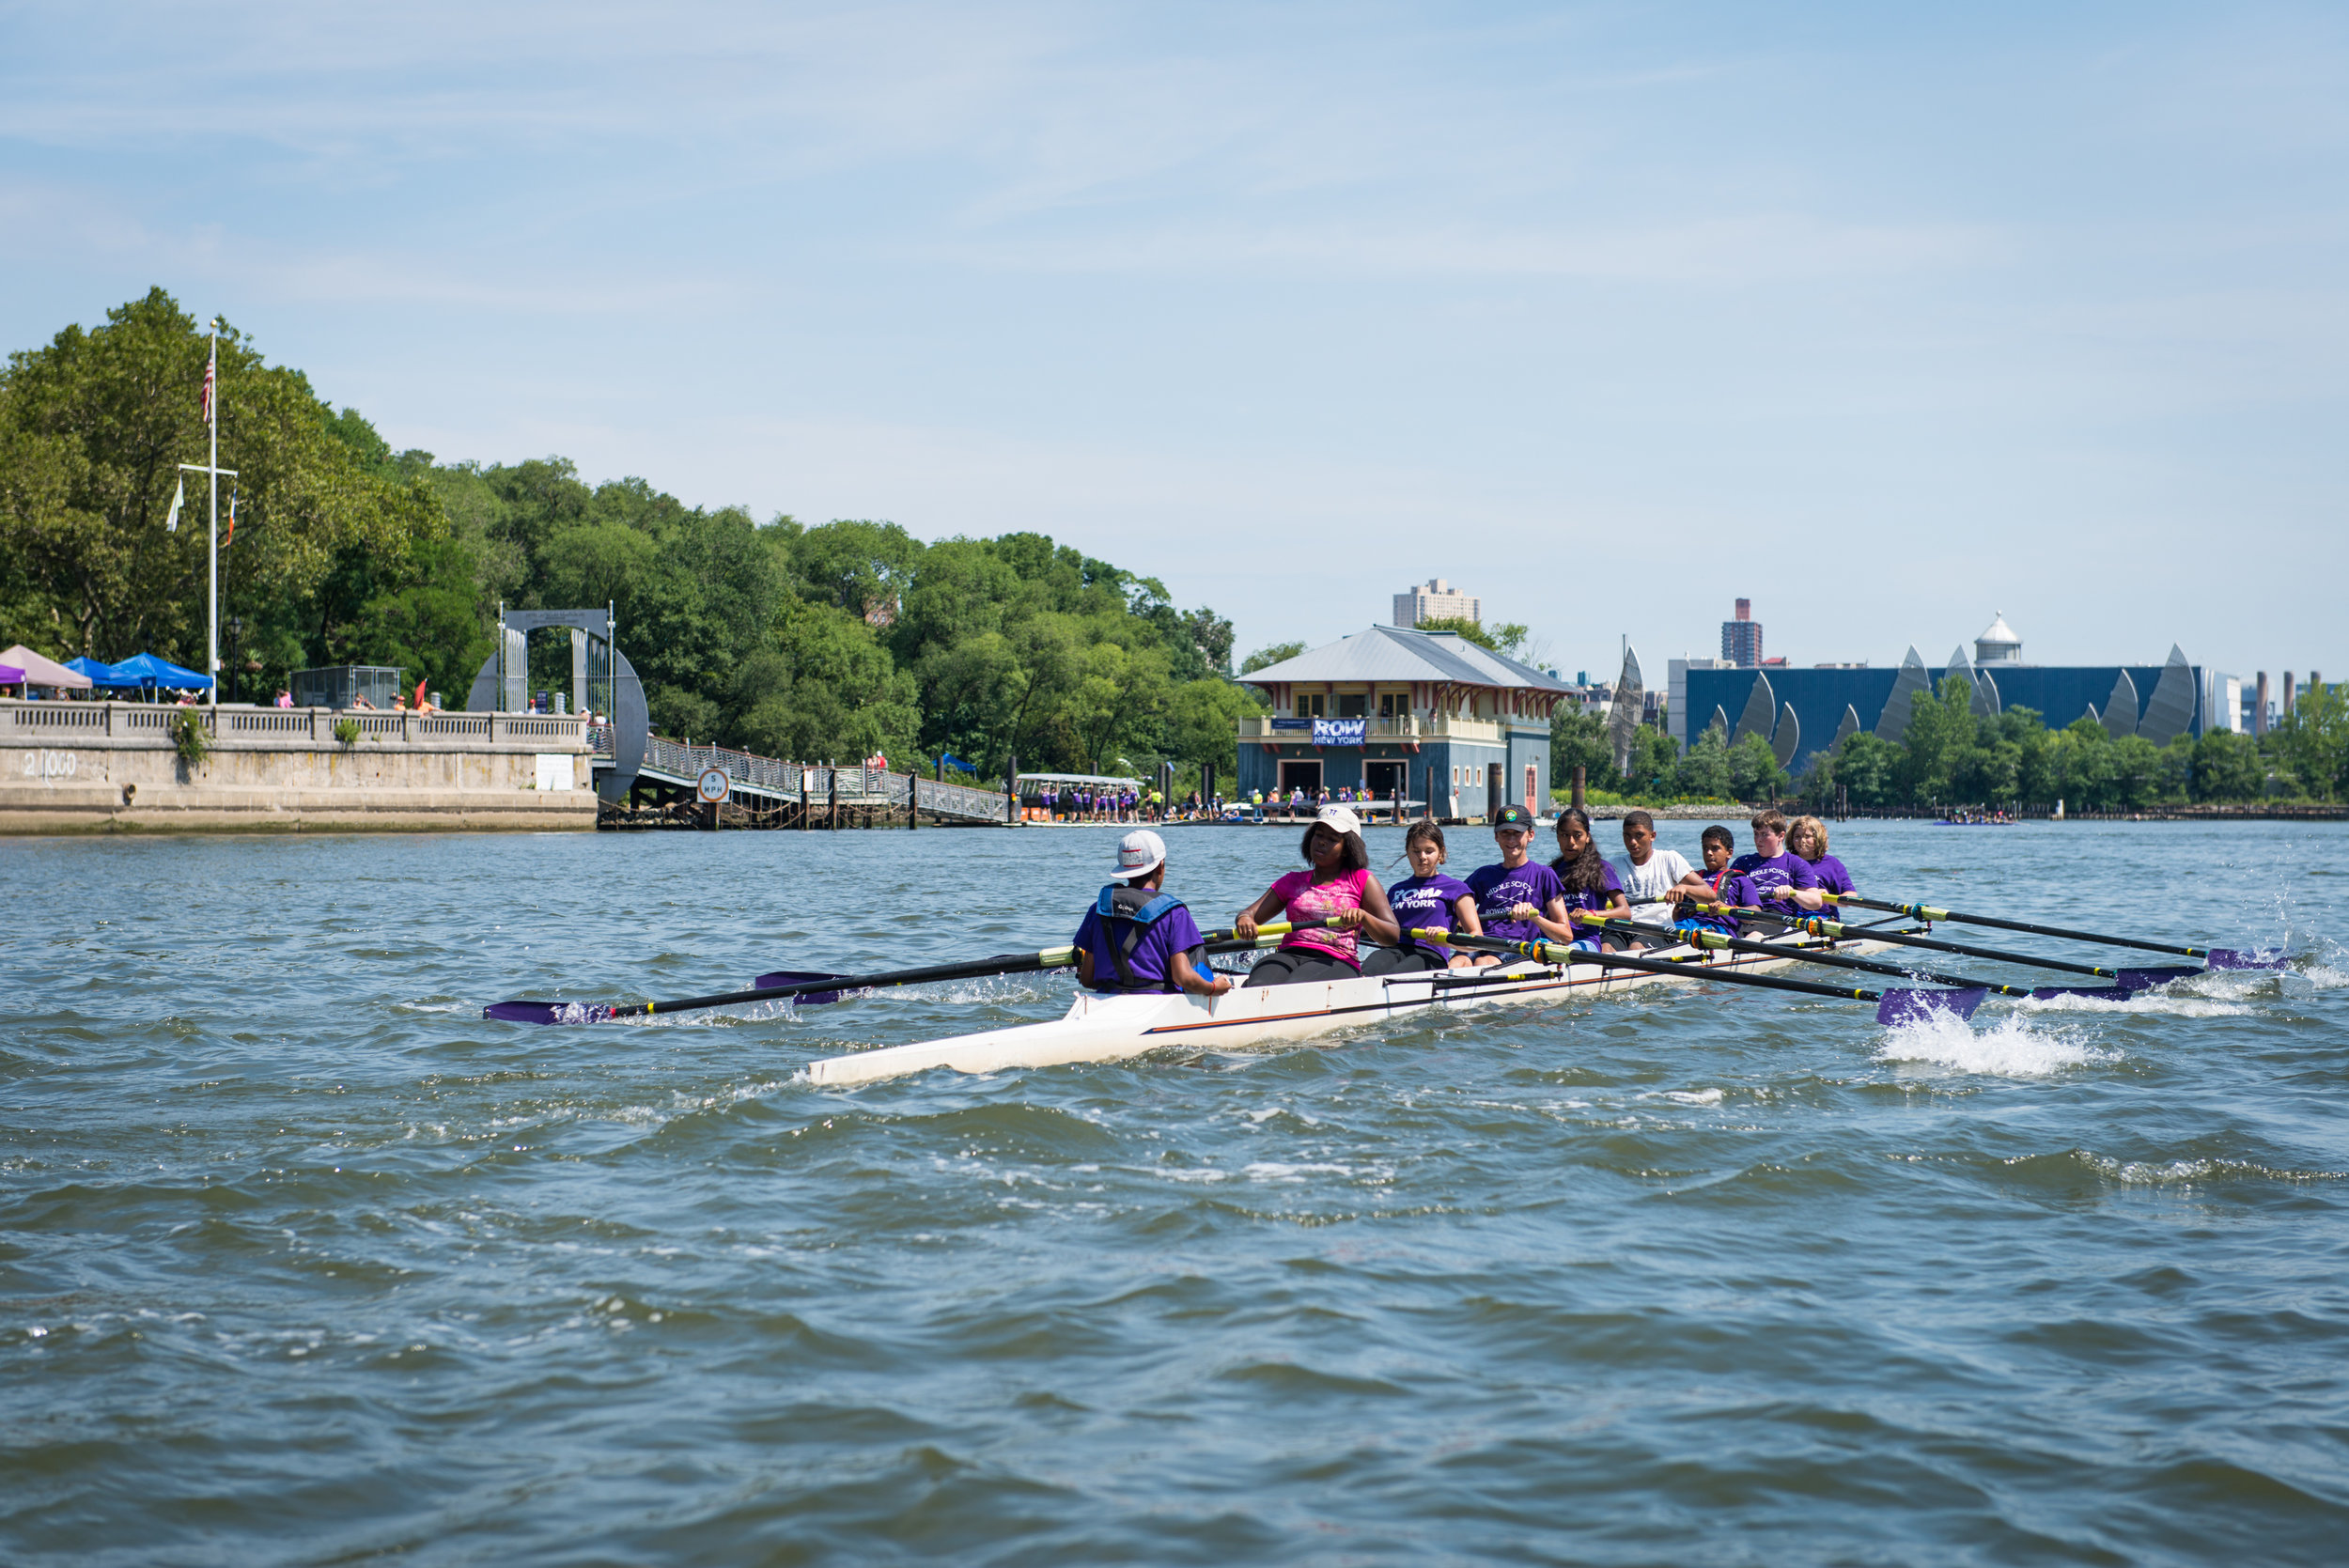 Youth participants at Row New York rowing. Photo credit: Row New York